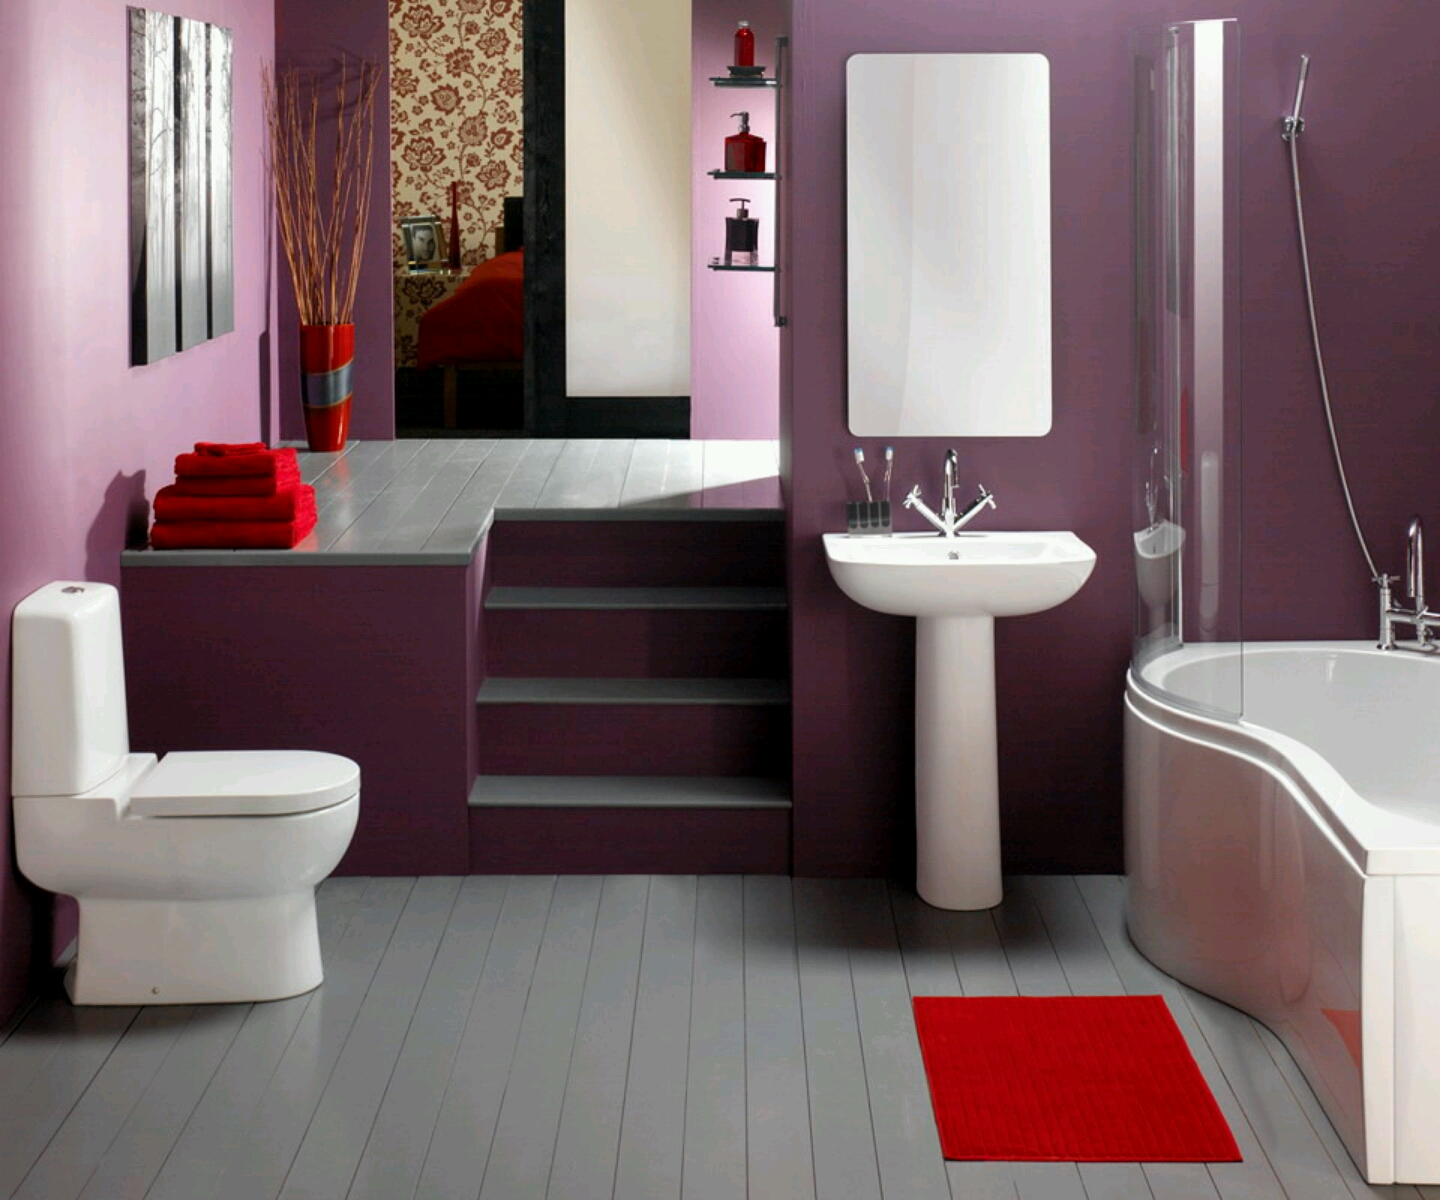 New home designs latest luxury modern bathrooms designs for Modern bathroom designs